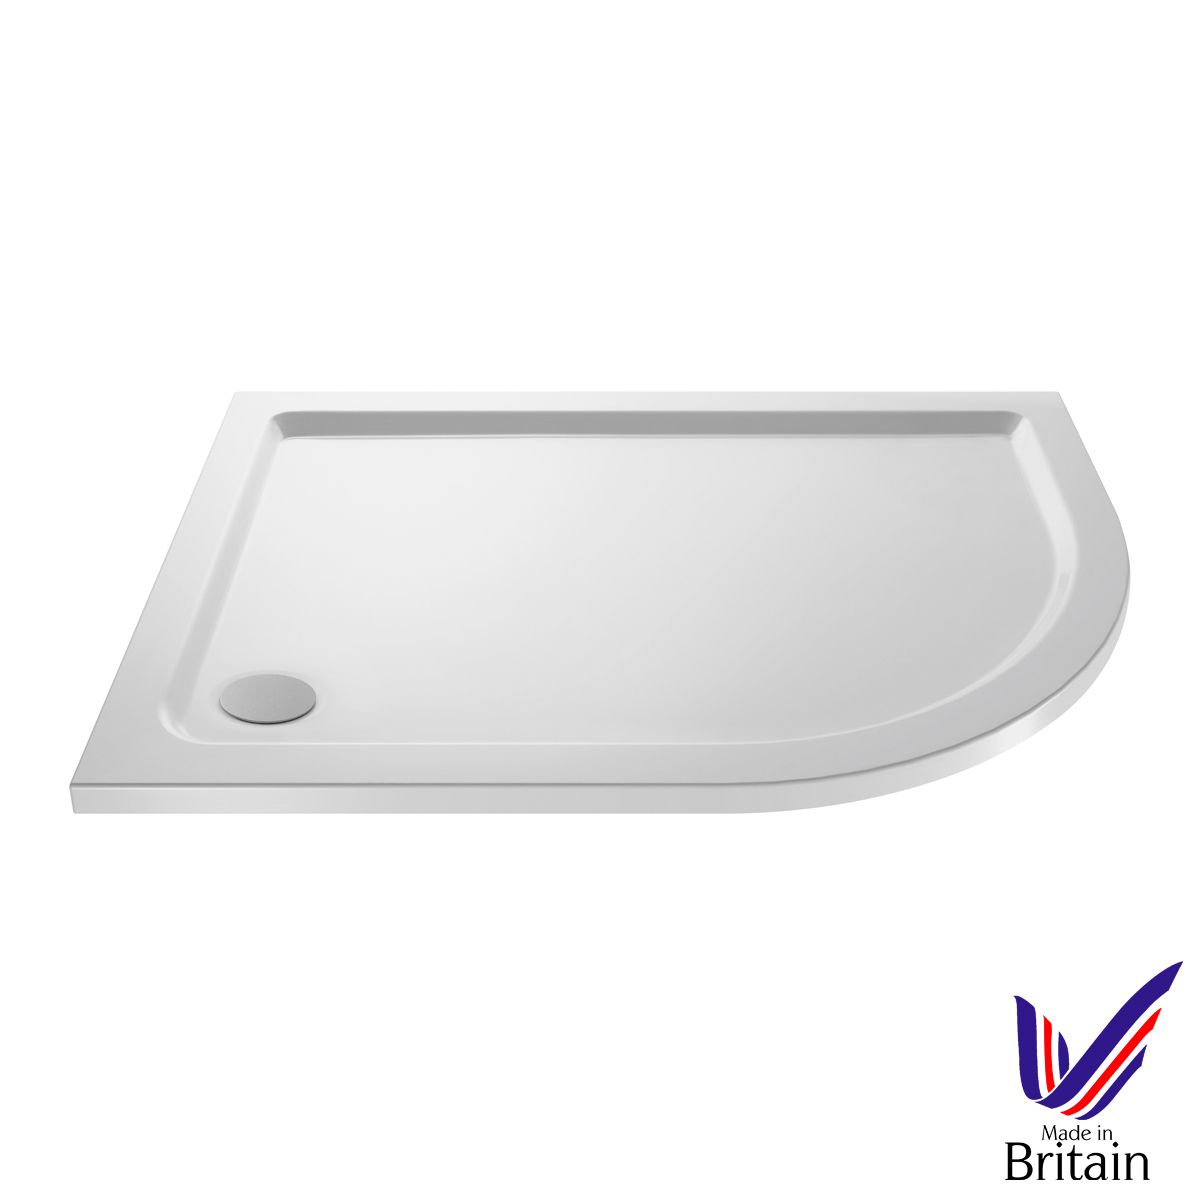 1000 x 800 Shower Tray Offset Quadrant Low Profile Right Hand by Pearlstone